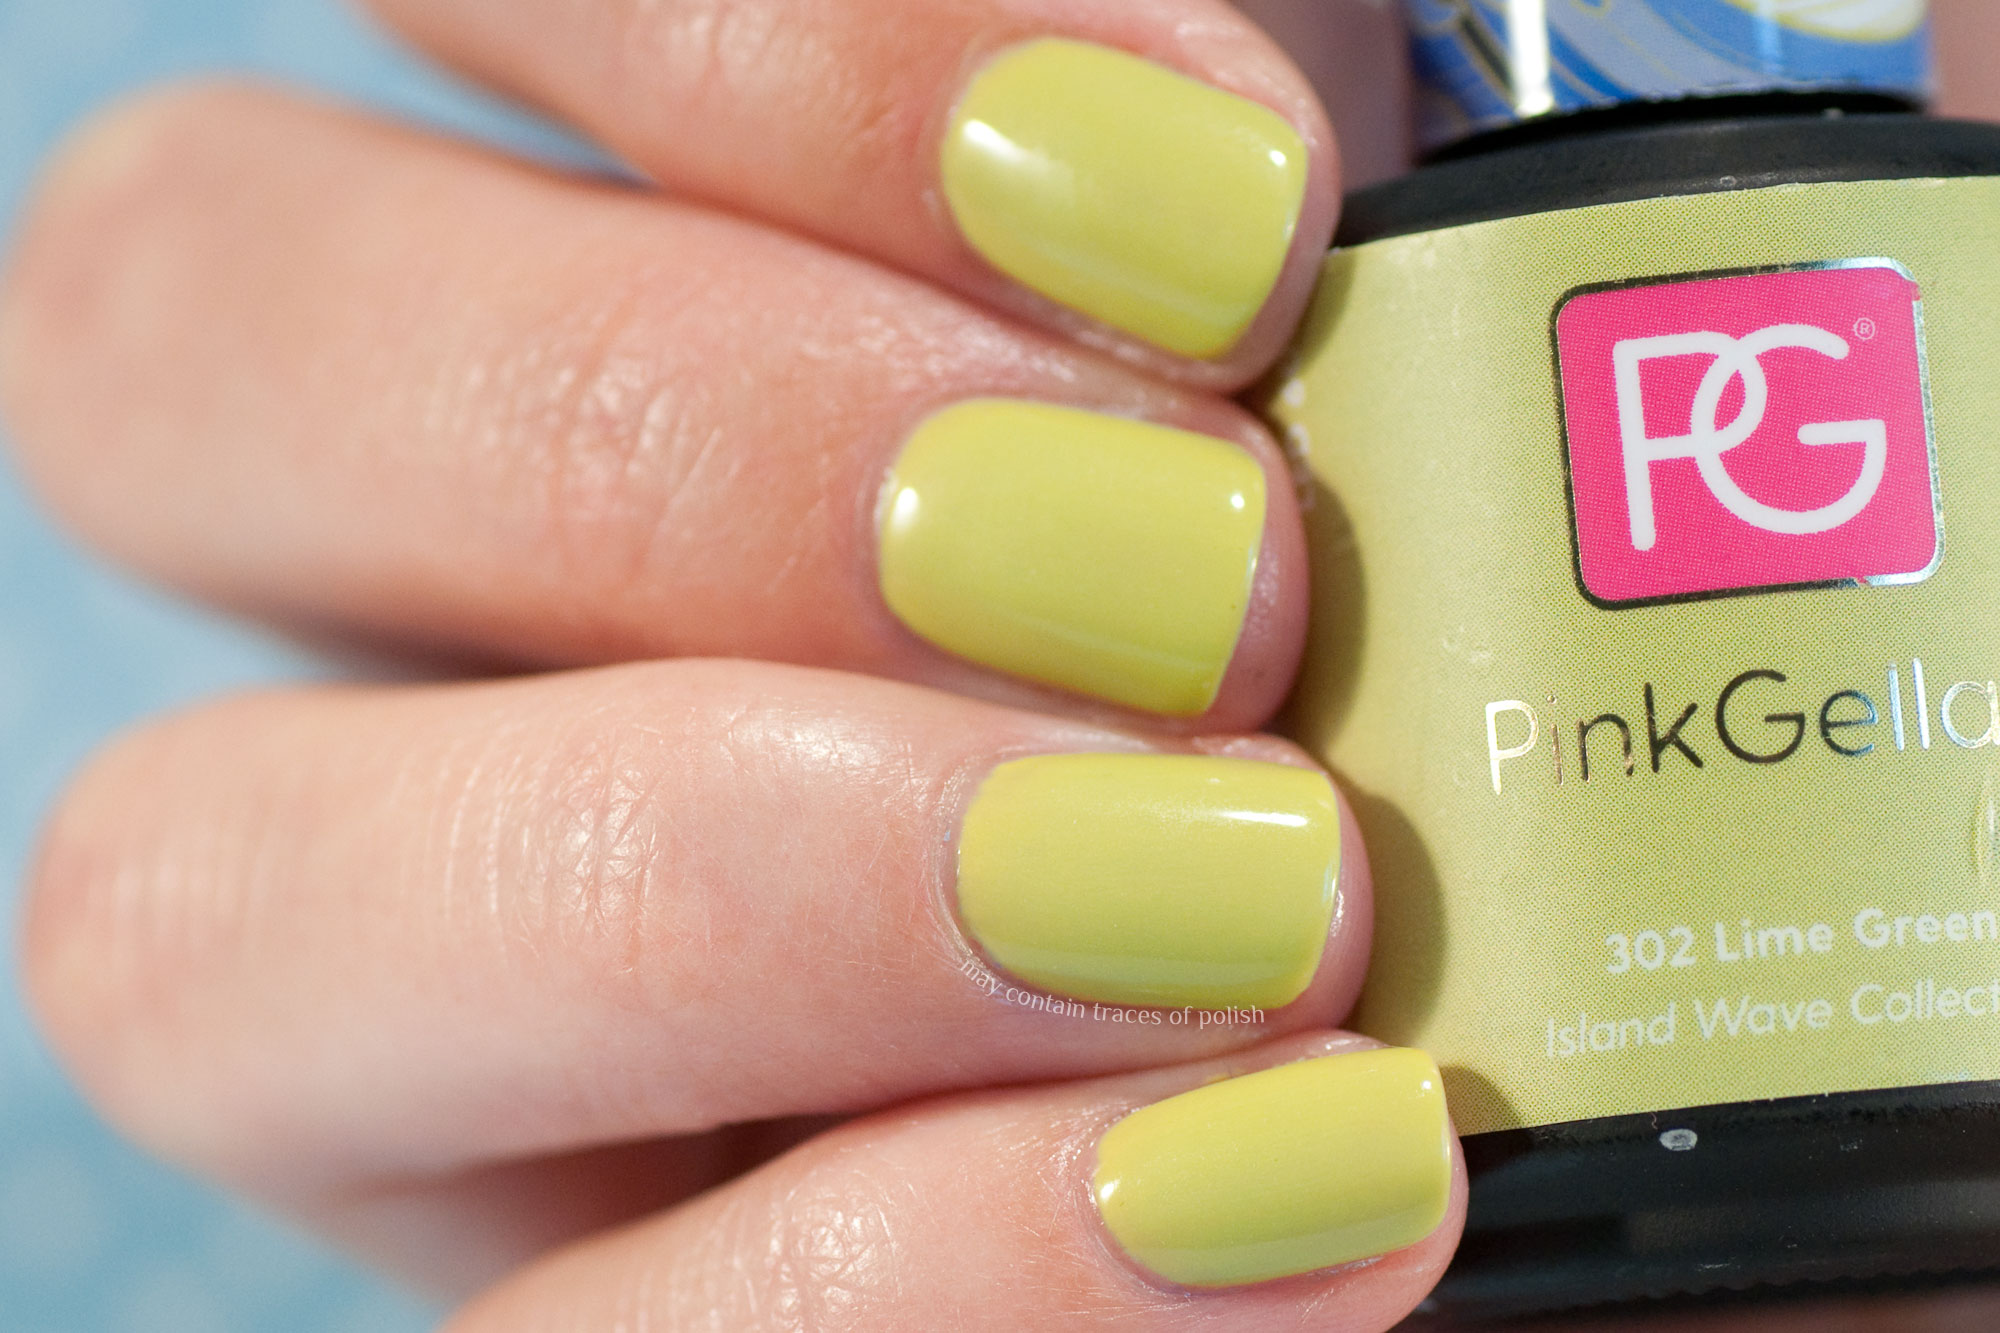 Pink Gellac 302 Lime Green - Island Wave Collection